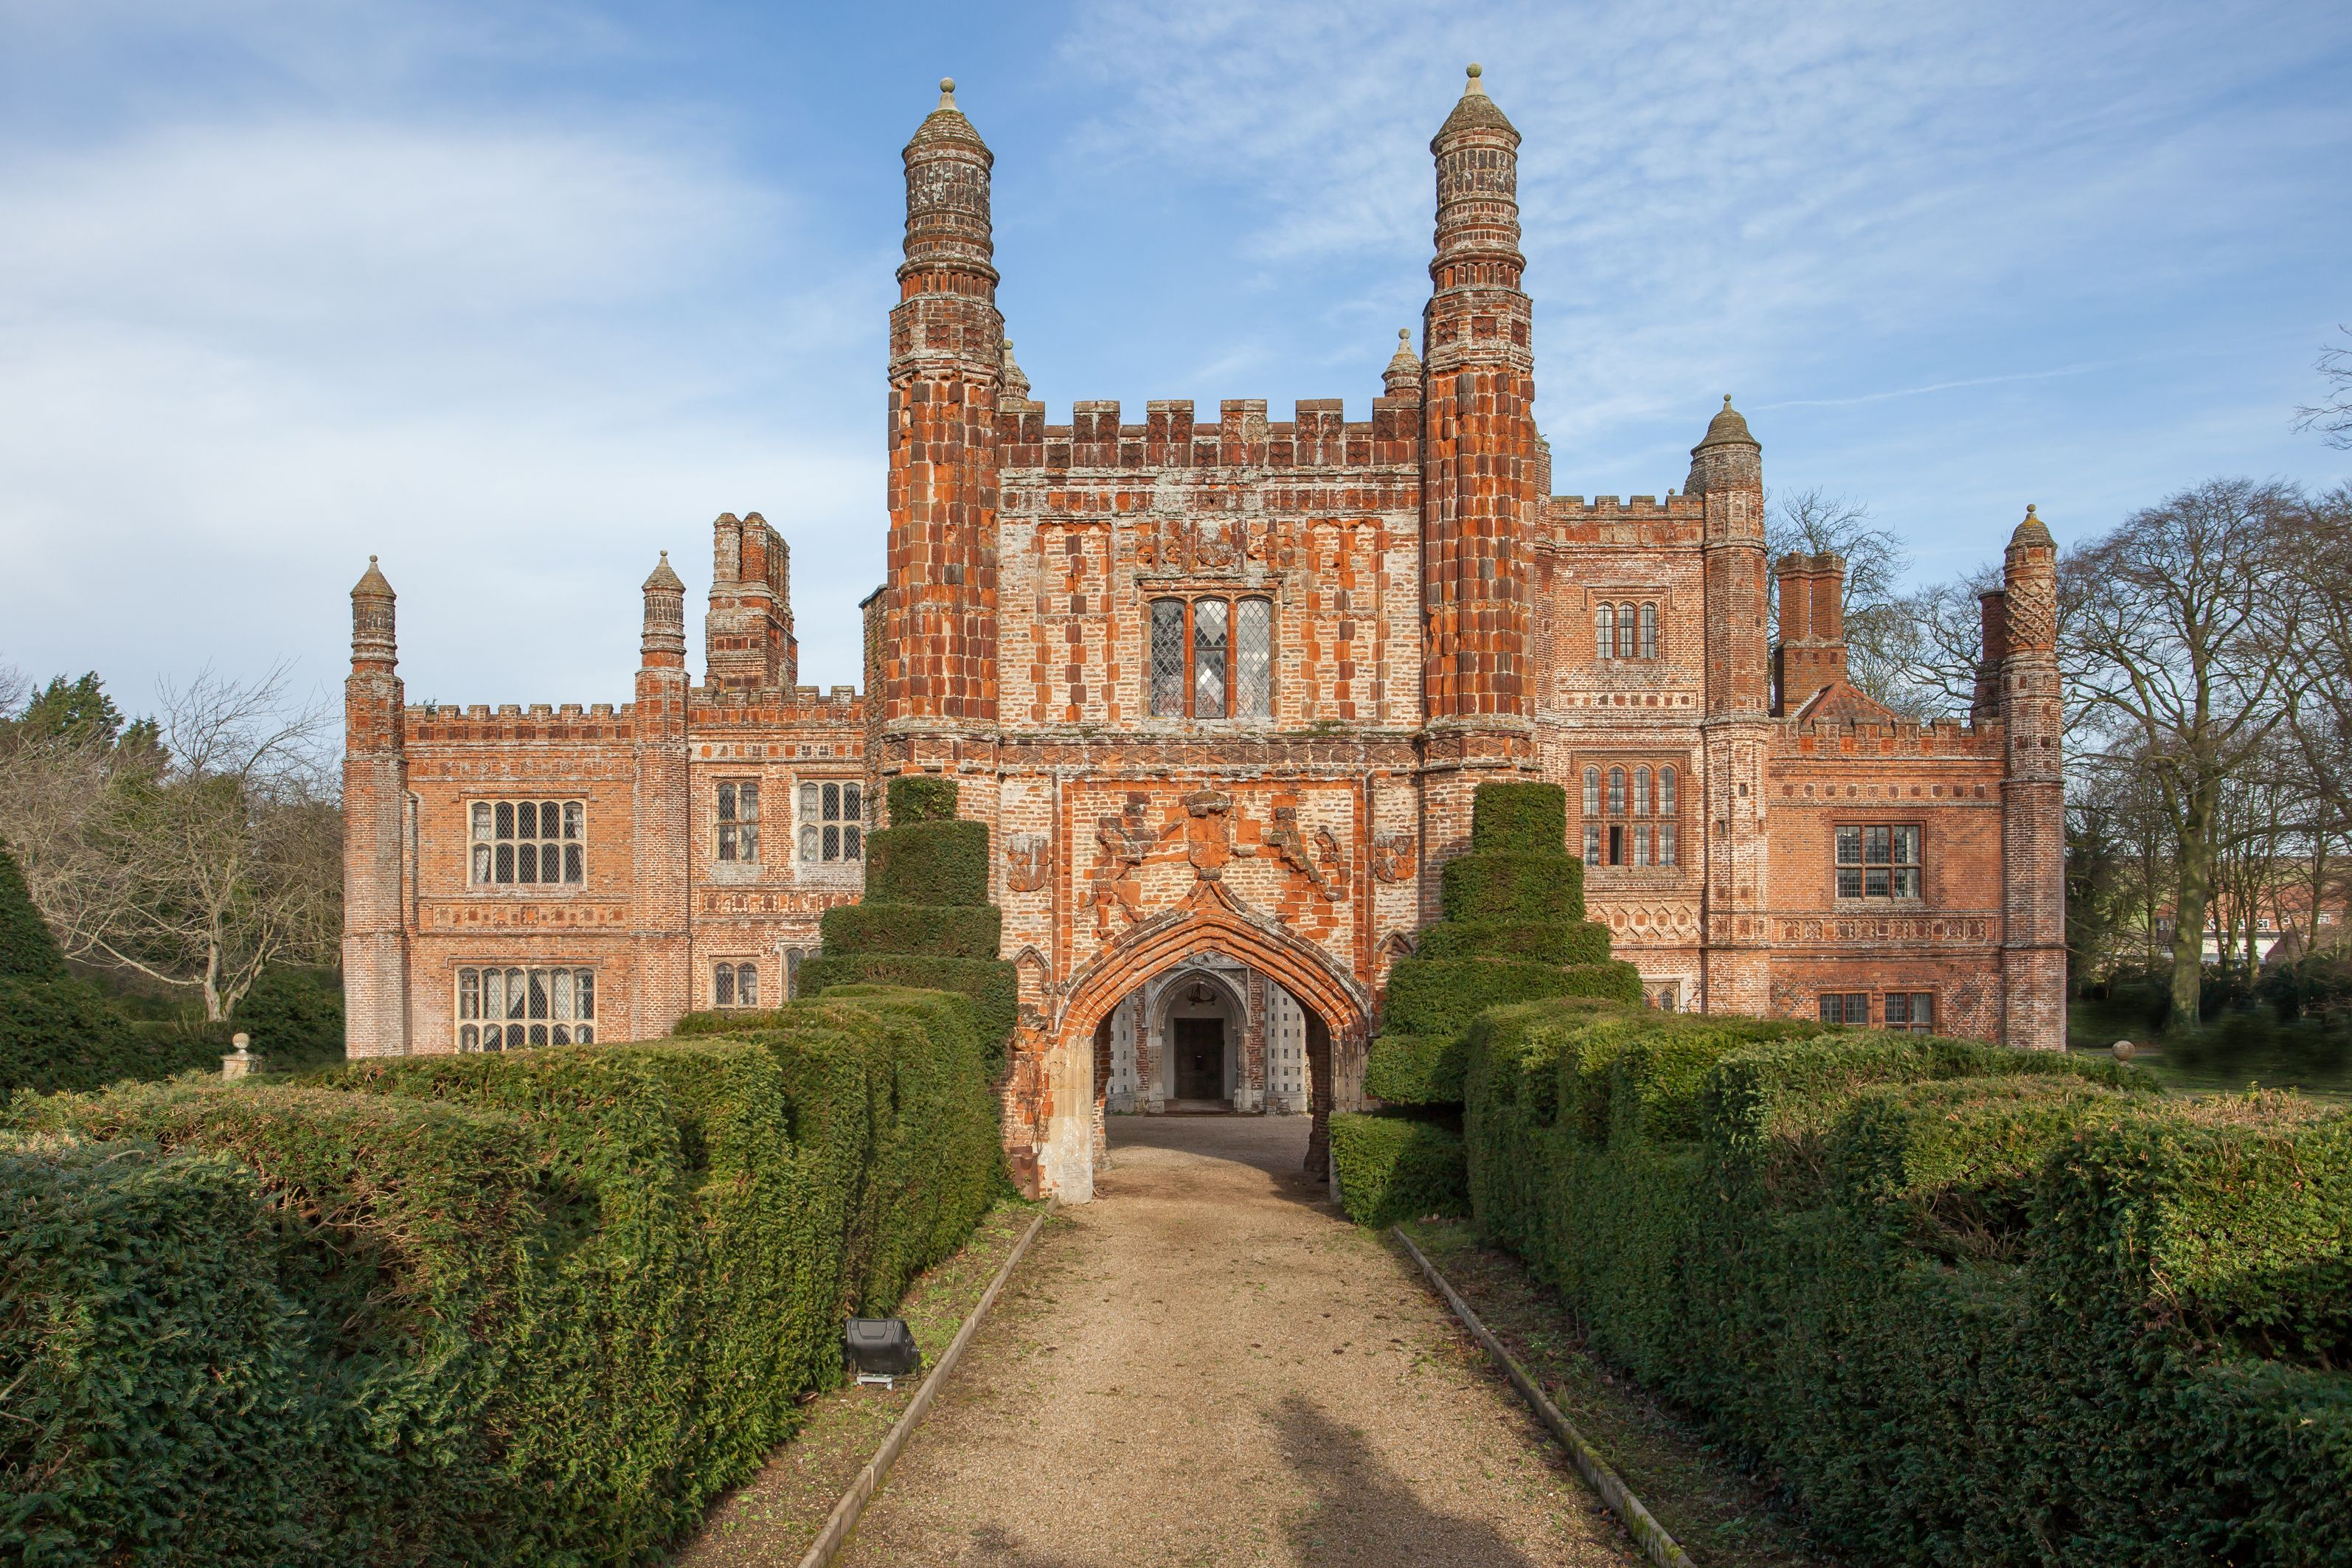 Eight bedroom main manor and a separate four bedroom gatehouse - The 16th Century Manor House Has Eight Nine Bedrooms Six Seven Reception Rooms And A Separate Three Bedroom Cottage With Detached Gatehouse